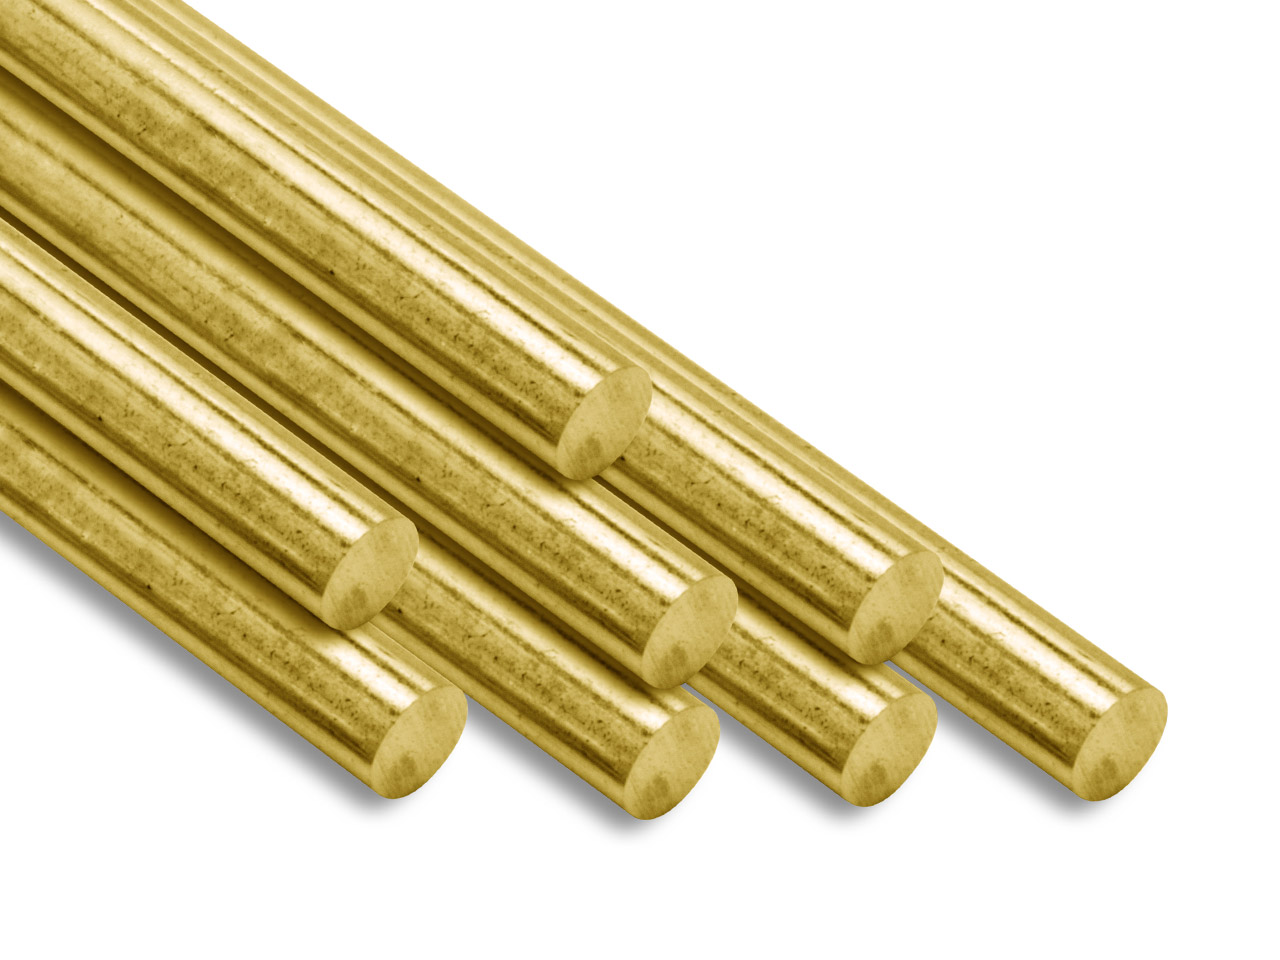 18hab Round Pin Wire 1.00mm Fully  Hard, Straight Lengths, 100%       Recycled Gold